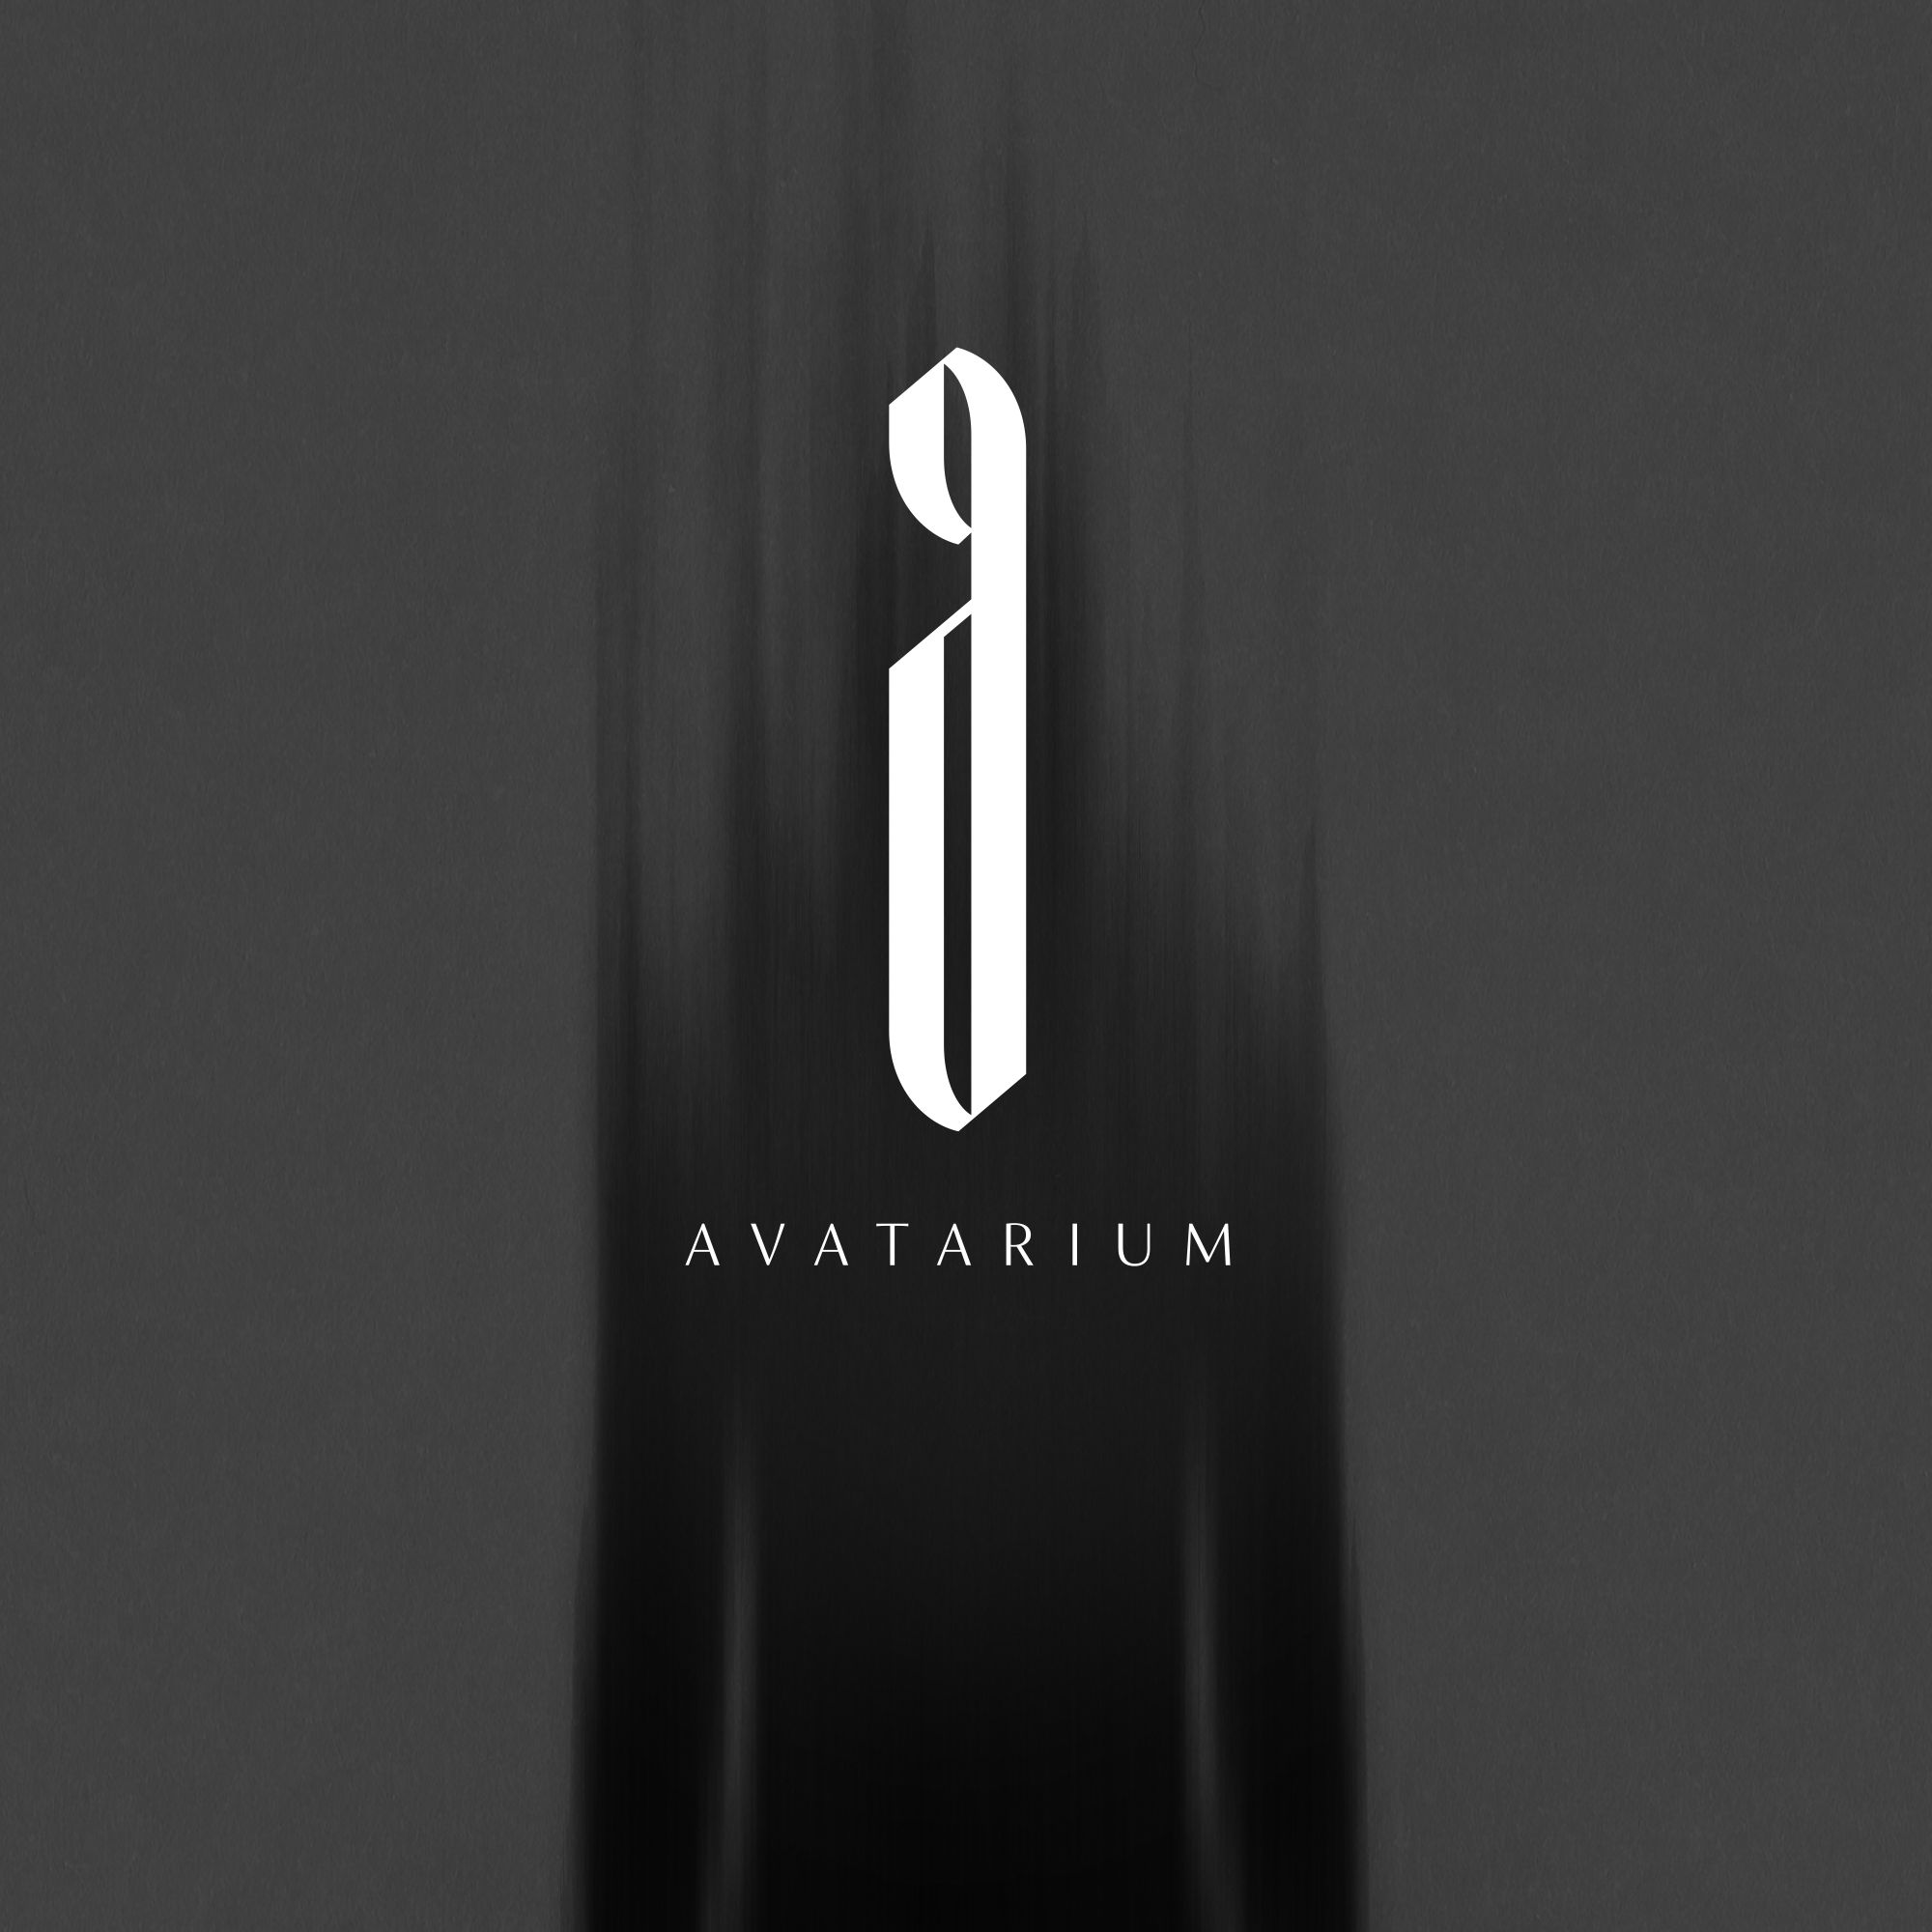 Avatarium - The Fire I Long For_4000px